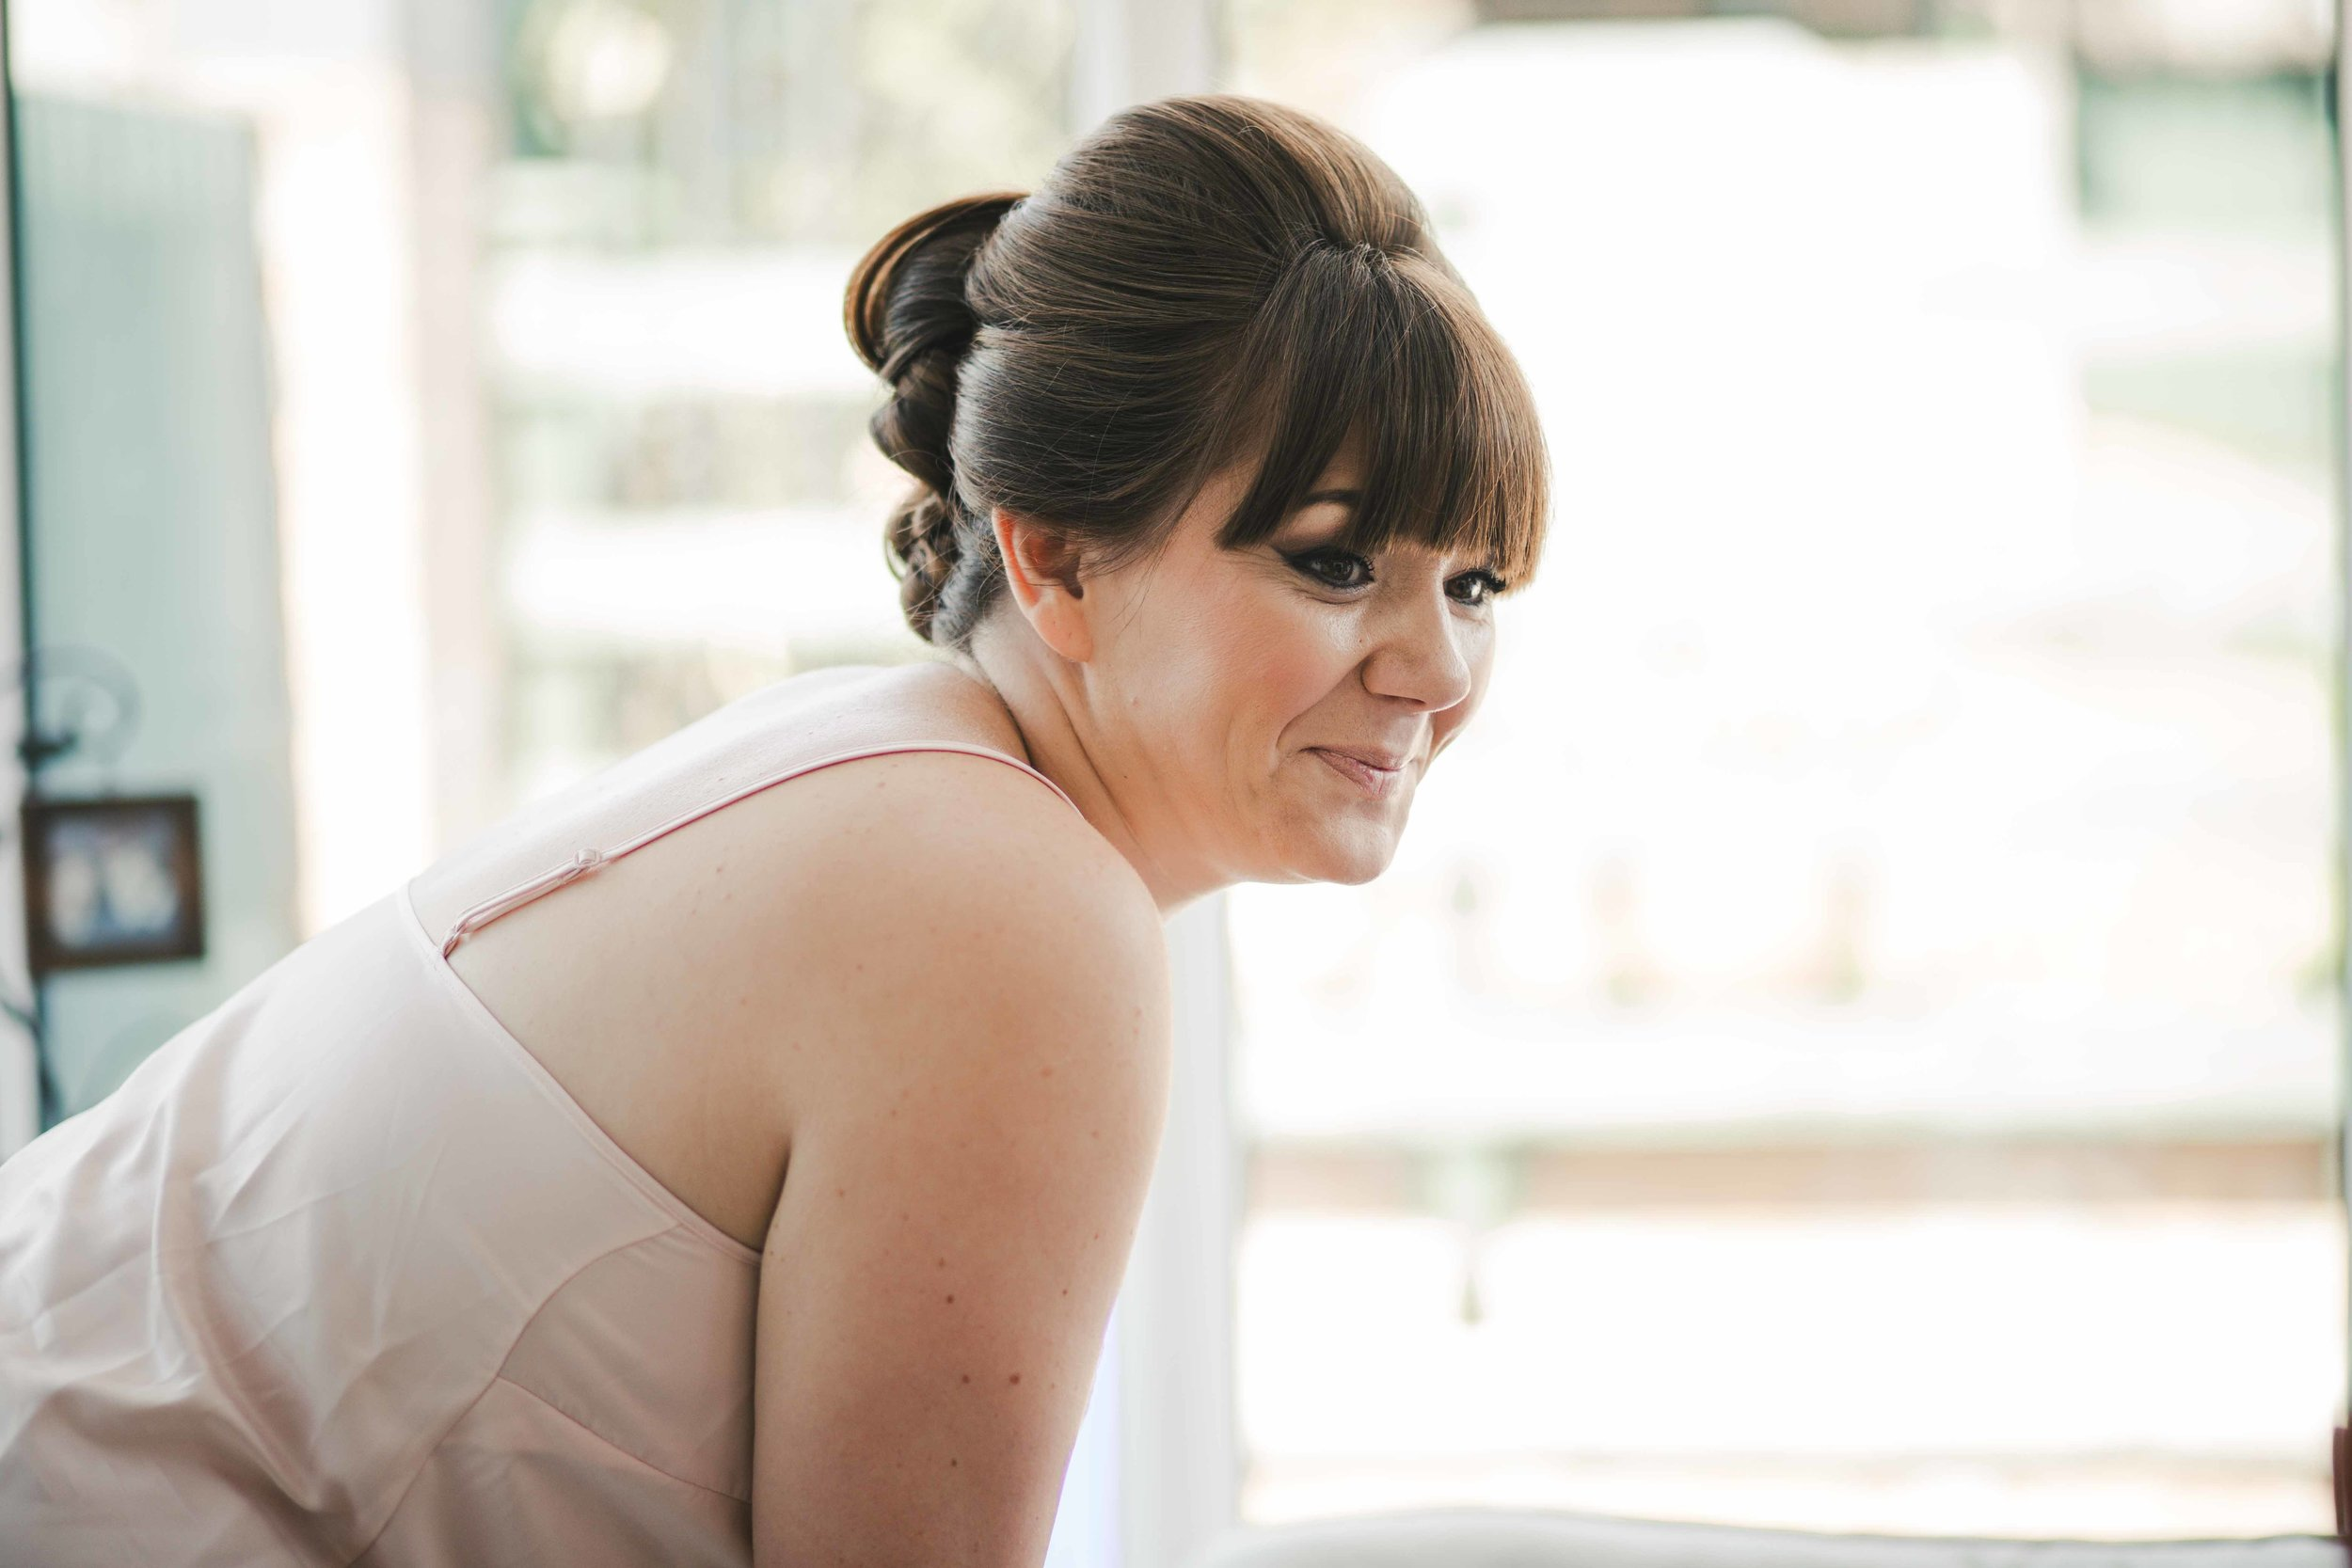 Lea-cooper-photography-wedding-photography-stoke-on-trent-wolverhampton-bridal-prep-bridal-photography-wedding-preperation-make-up-getting-ready-photos-wedding-photographer-33.JPG